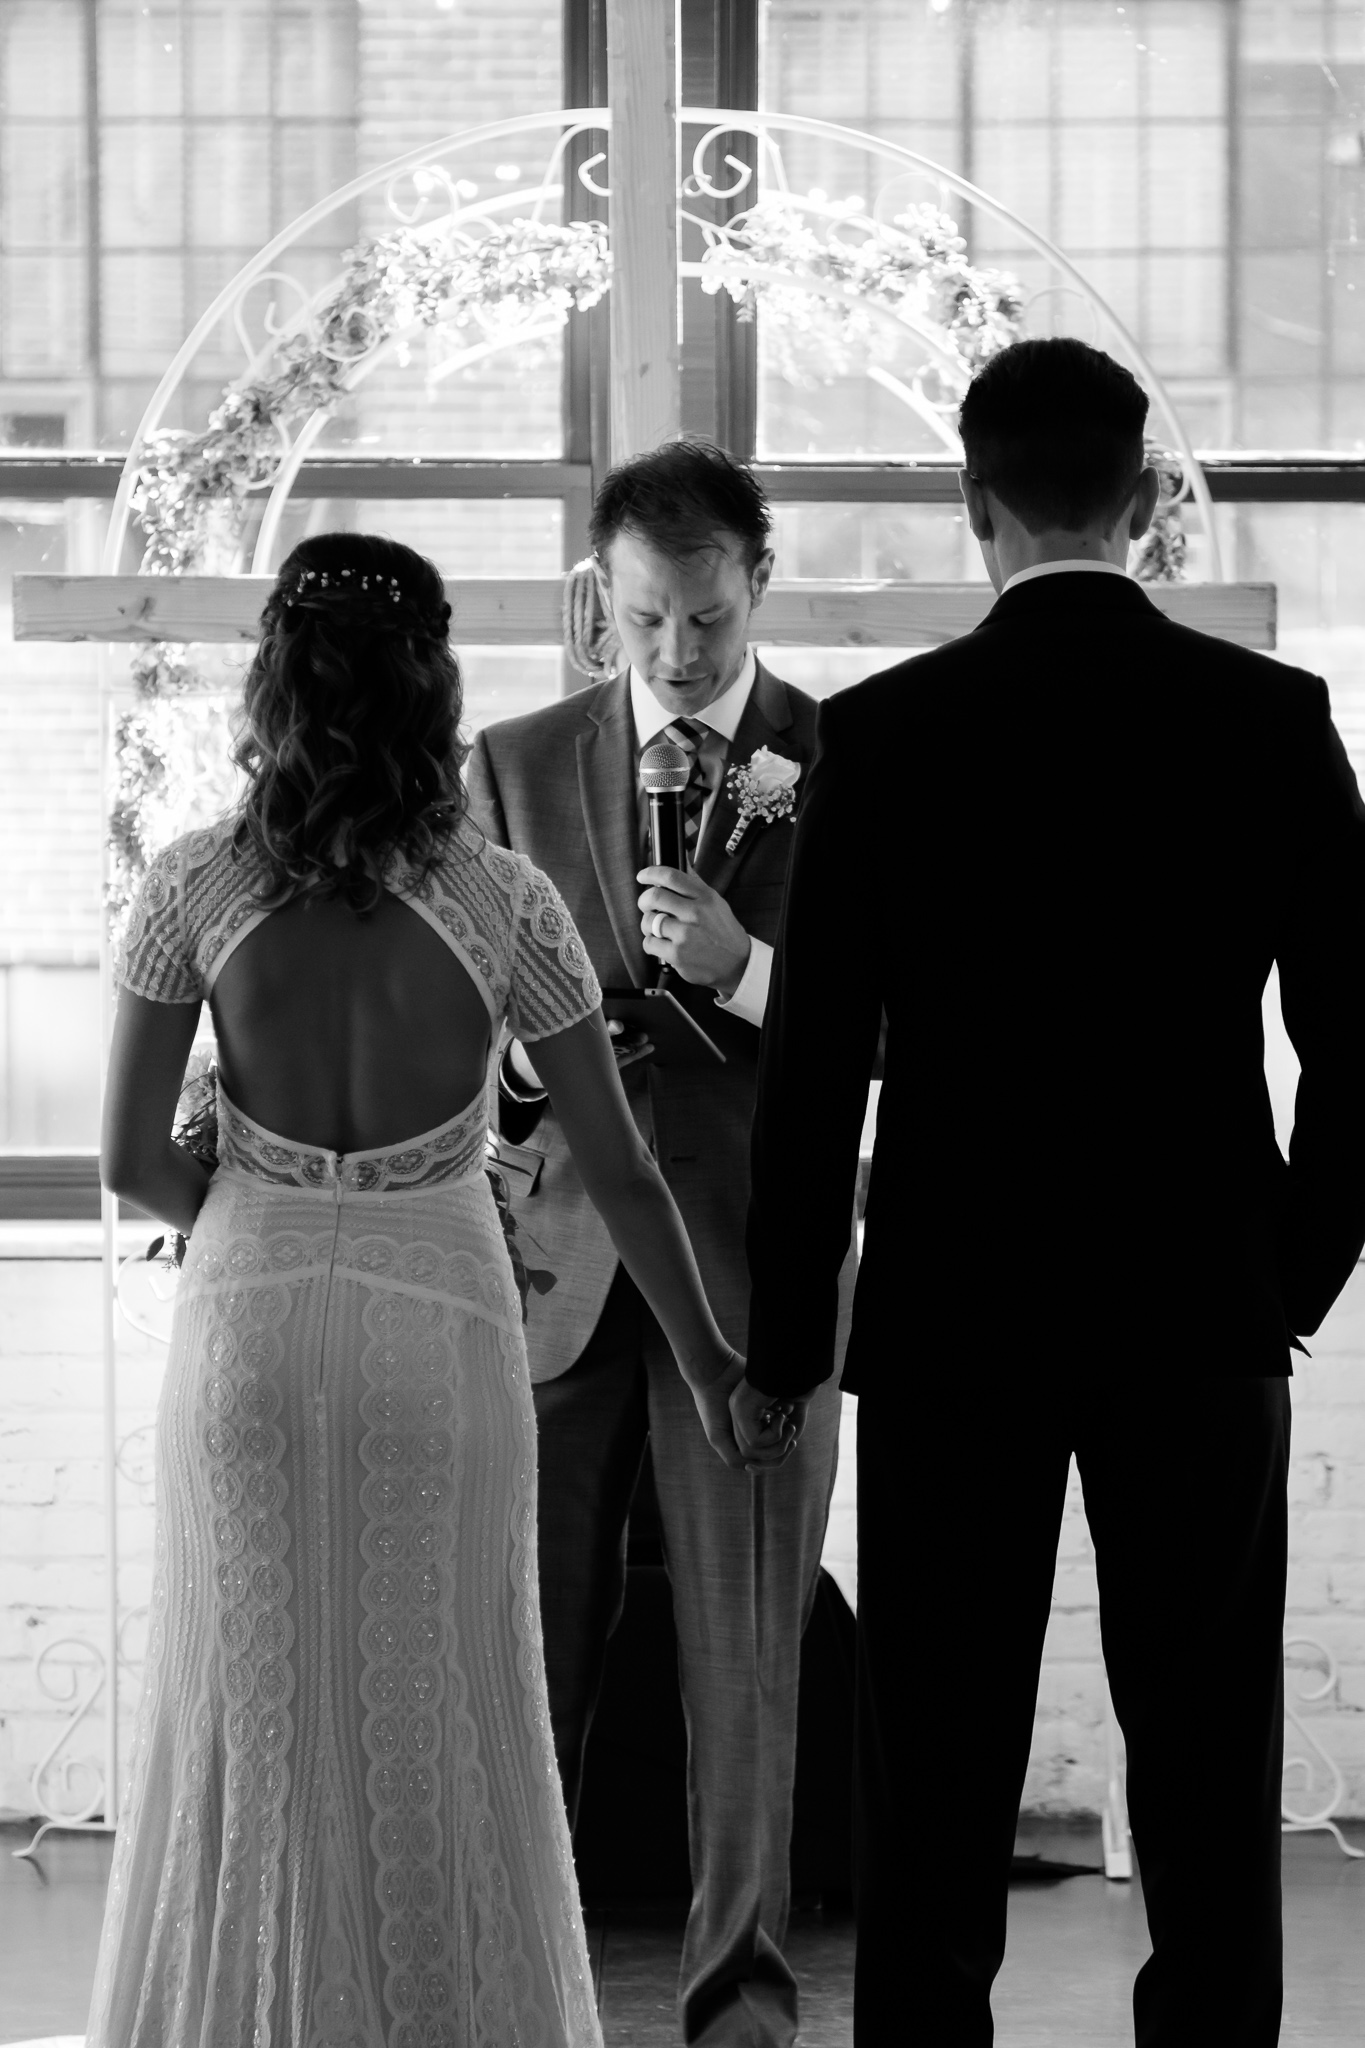 20180915wedding-kyler-michaela-604.jpg